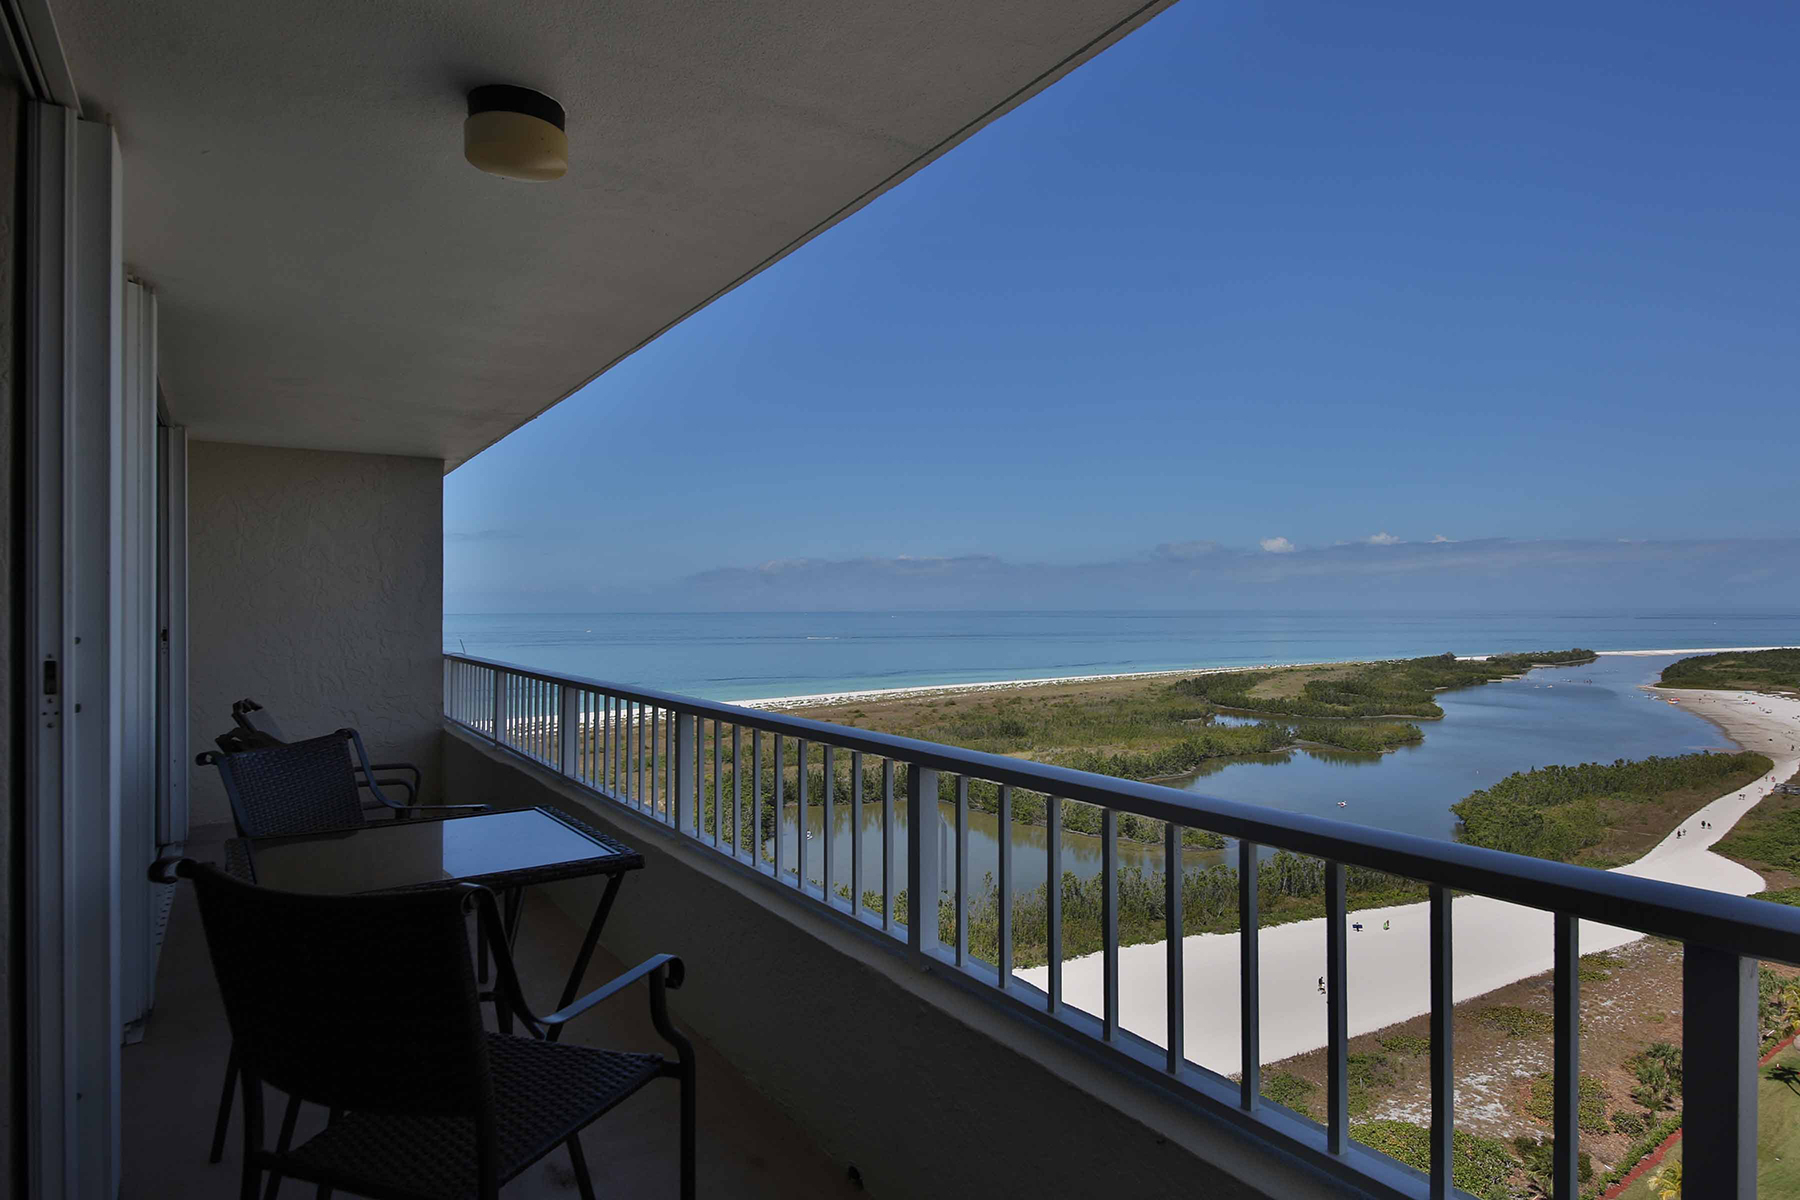 Condominium for Sale at MARCO ISLAND 320 Seaview Ct 2010, Marco Island, Florida 34145 United States